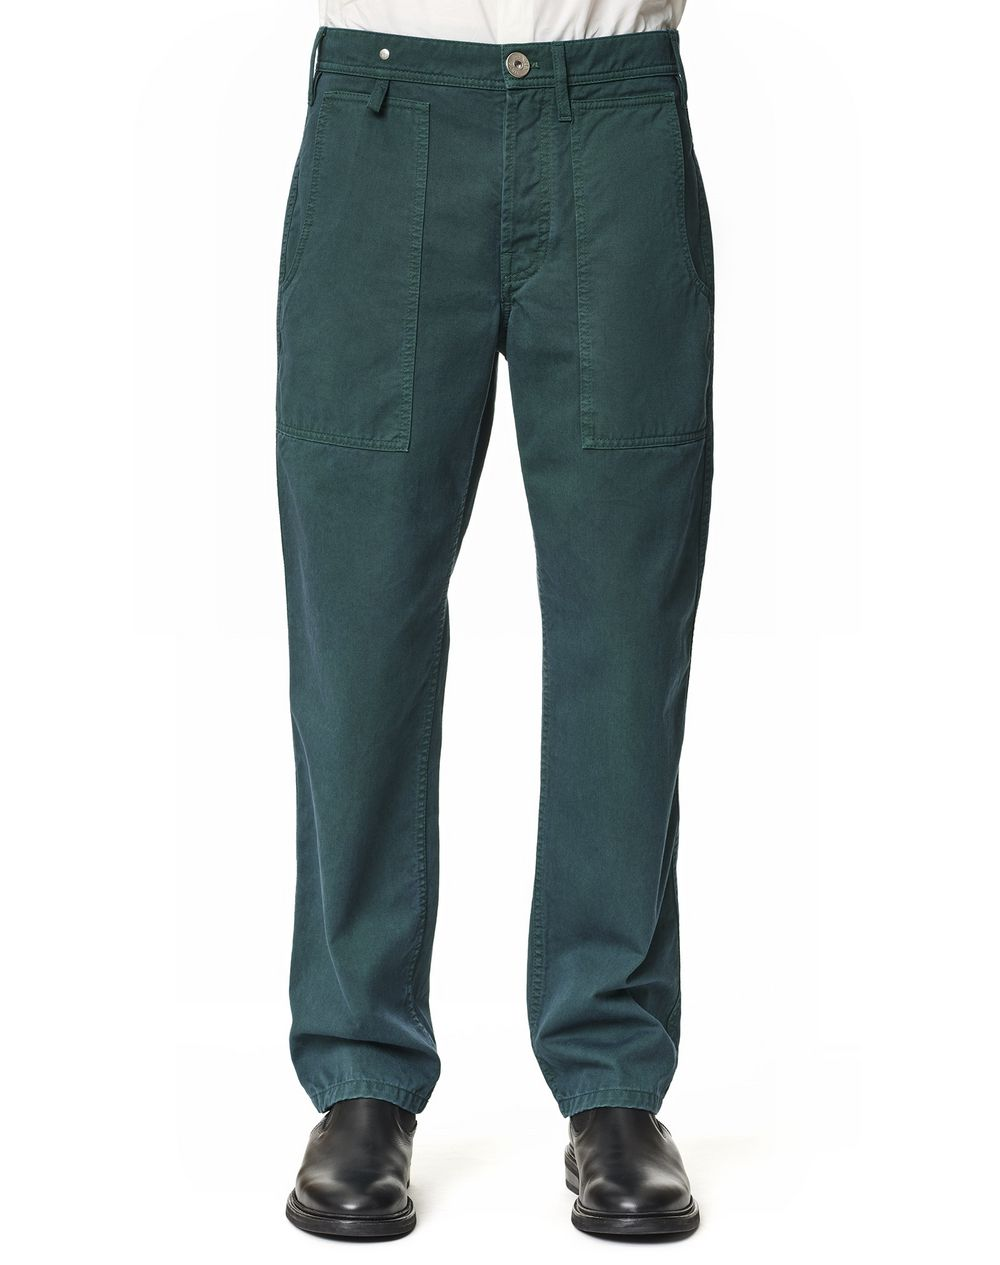 FIVE POCKETS TROUSERS - Lanvin